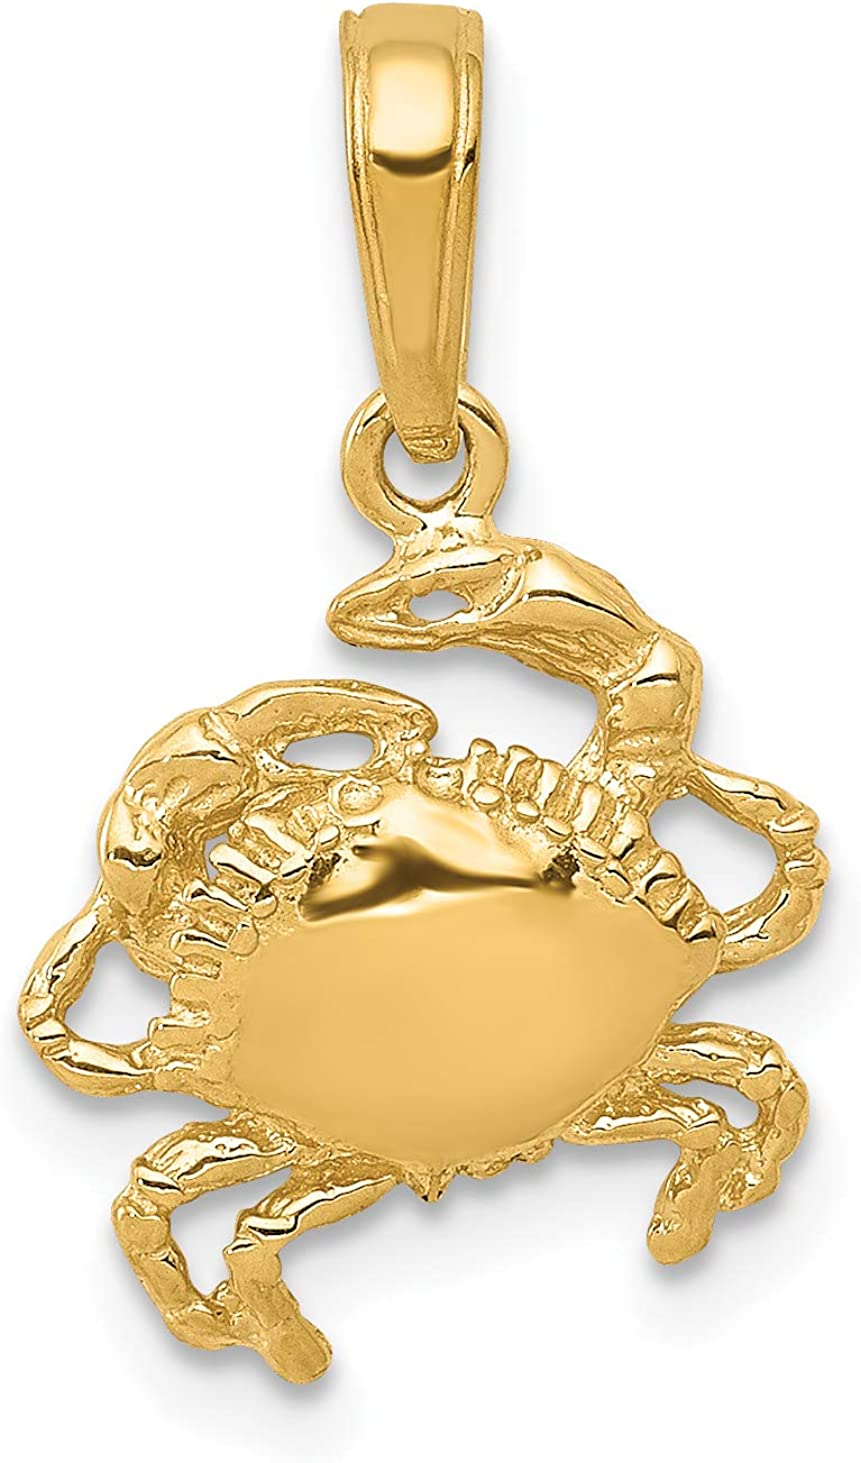 14k Yellow Gold Solid Polished Open-Back Crab Pendant 29x11mm